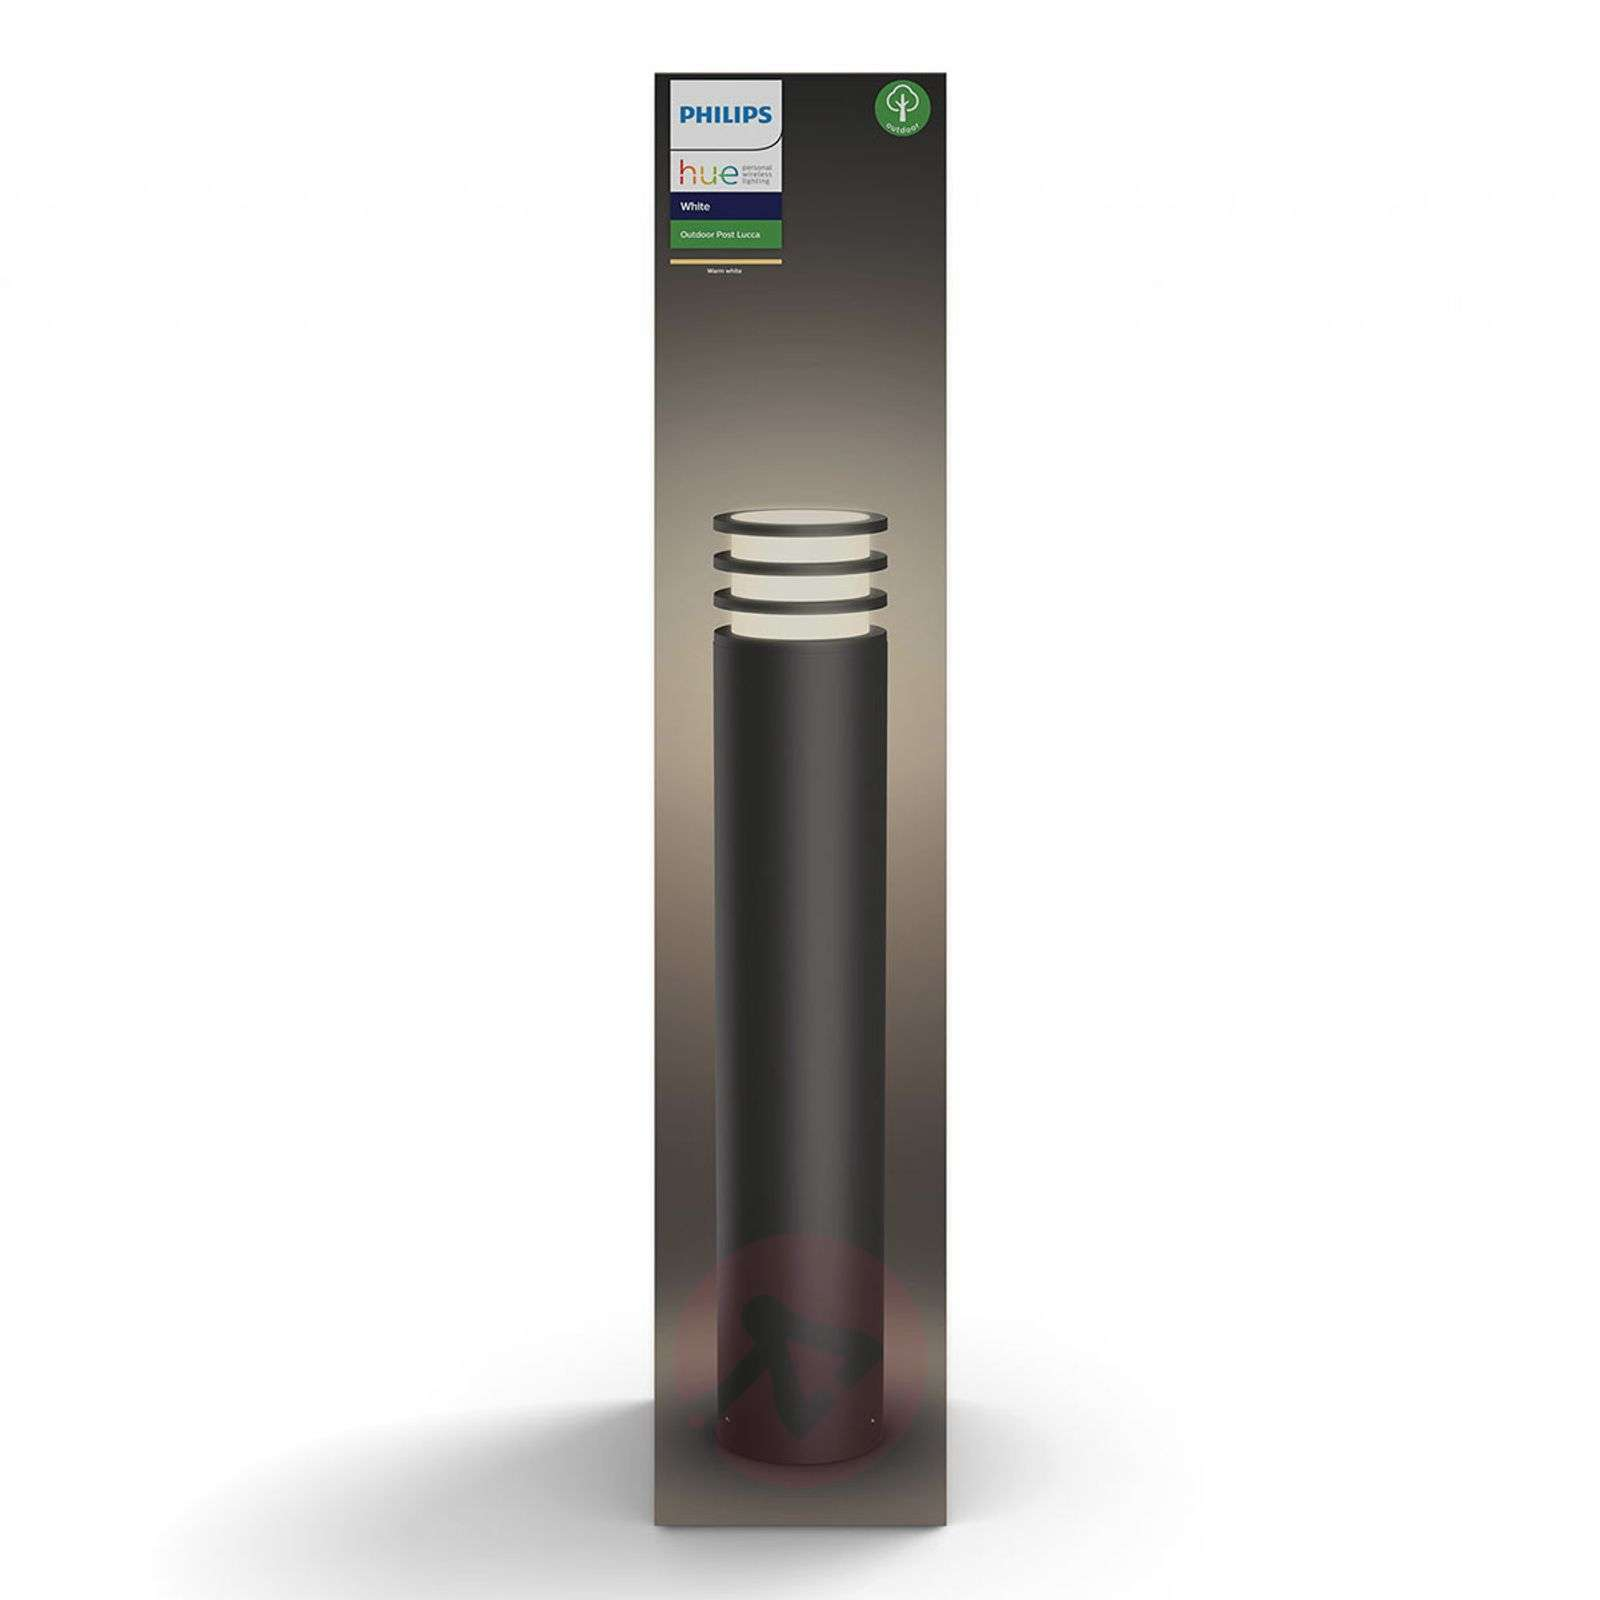 Philips Hue Lucca LED bollard light, anthracite-7534050-01